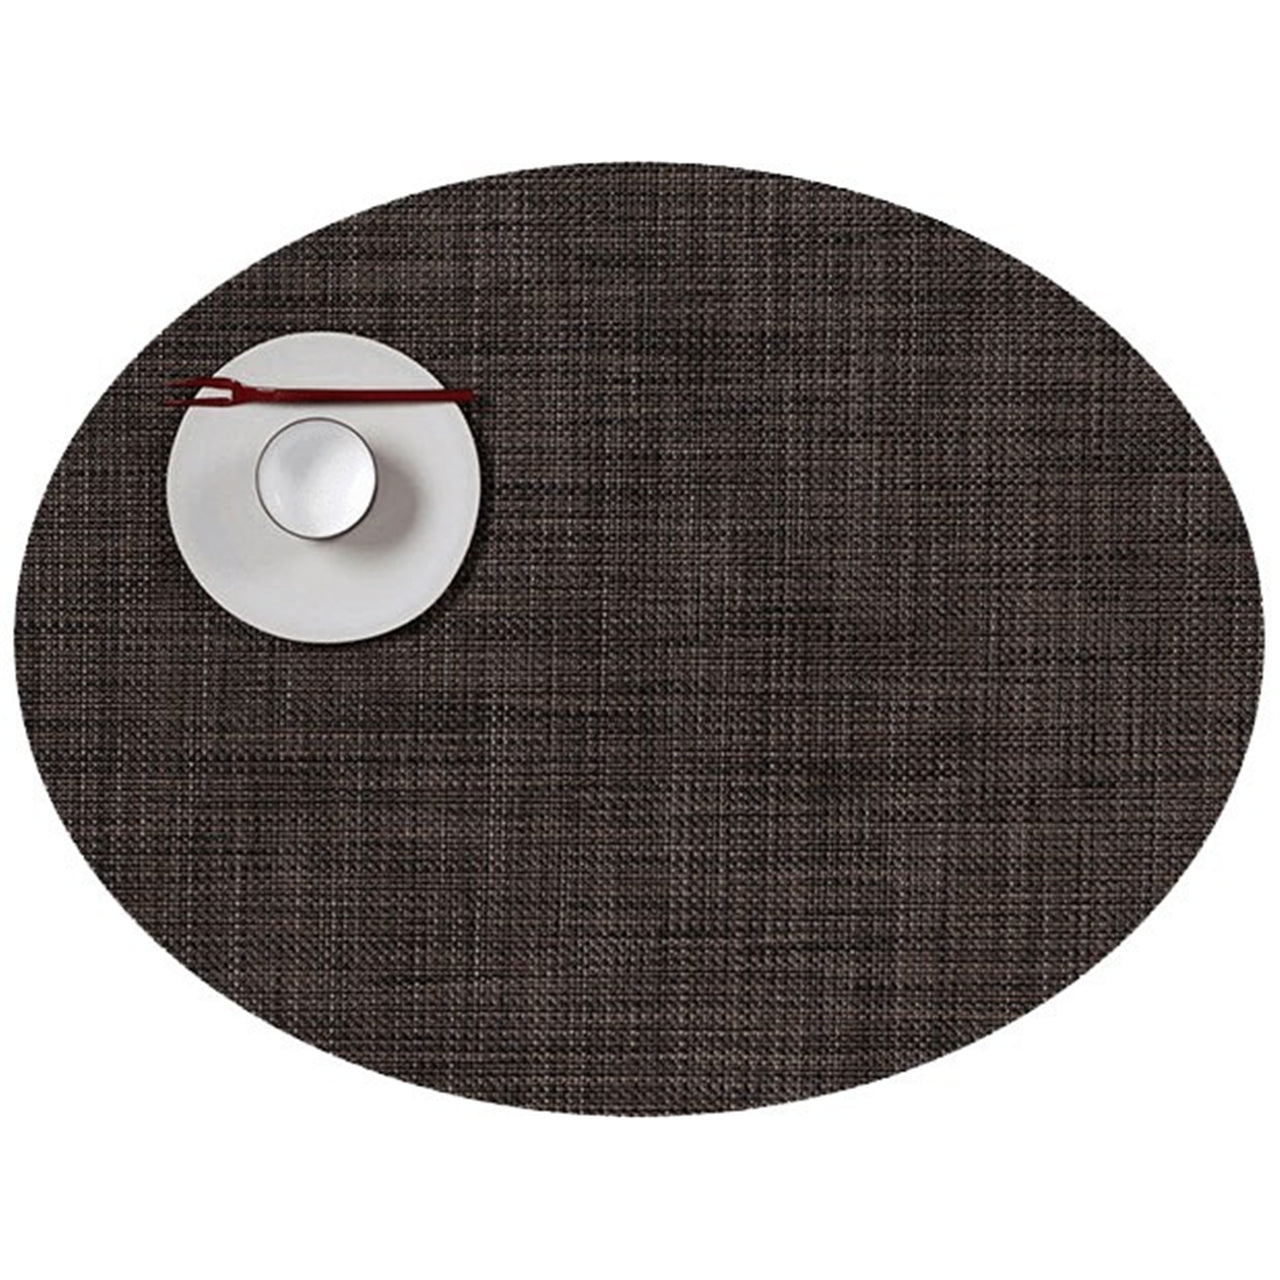 Mini Basketweave Round Placemats: Oval + Dark Walnut